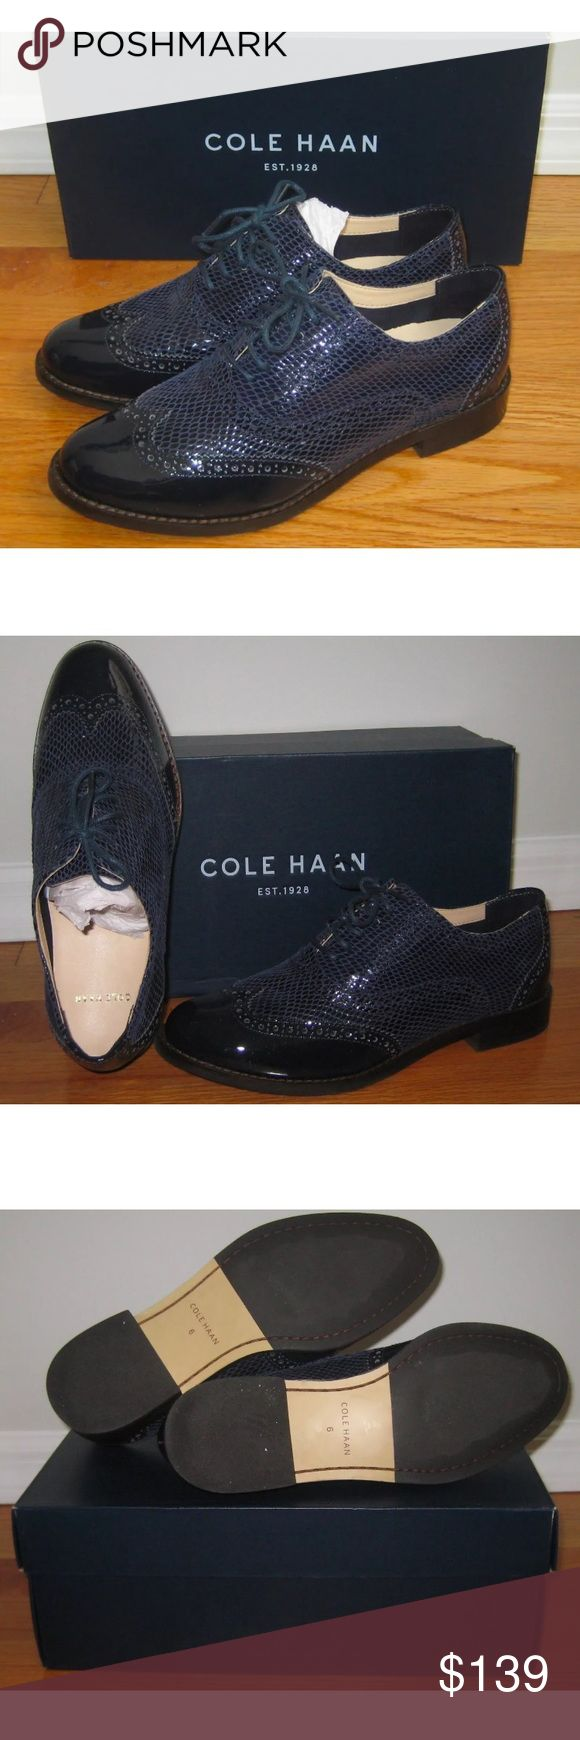 Cole Haan Skyler Oxfords II Snakeskin Patent 6 COLE HAAN Oxfords  Size 6 U.S.  Blue glossy patent leather  Softened, snakeskin-print quarter and vamp  Brogue-trimmed heel and wingtip toe  Cushioned, leather-lined footbed  Traction outsole  Style No. D42811  Retail Price: $238.00  Brand new in original box. I bought these before I became pregnant and didn't have a chance to wear them. Unfortunately my foot grew and I no longer fit into them :-( If you're a size 6 please check my other shoe…